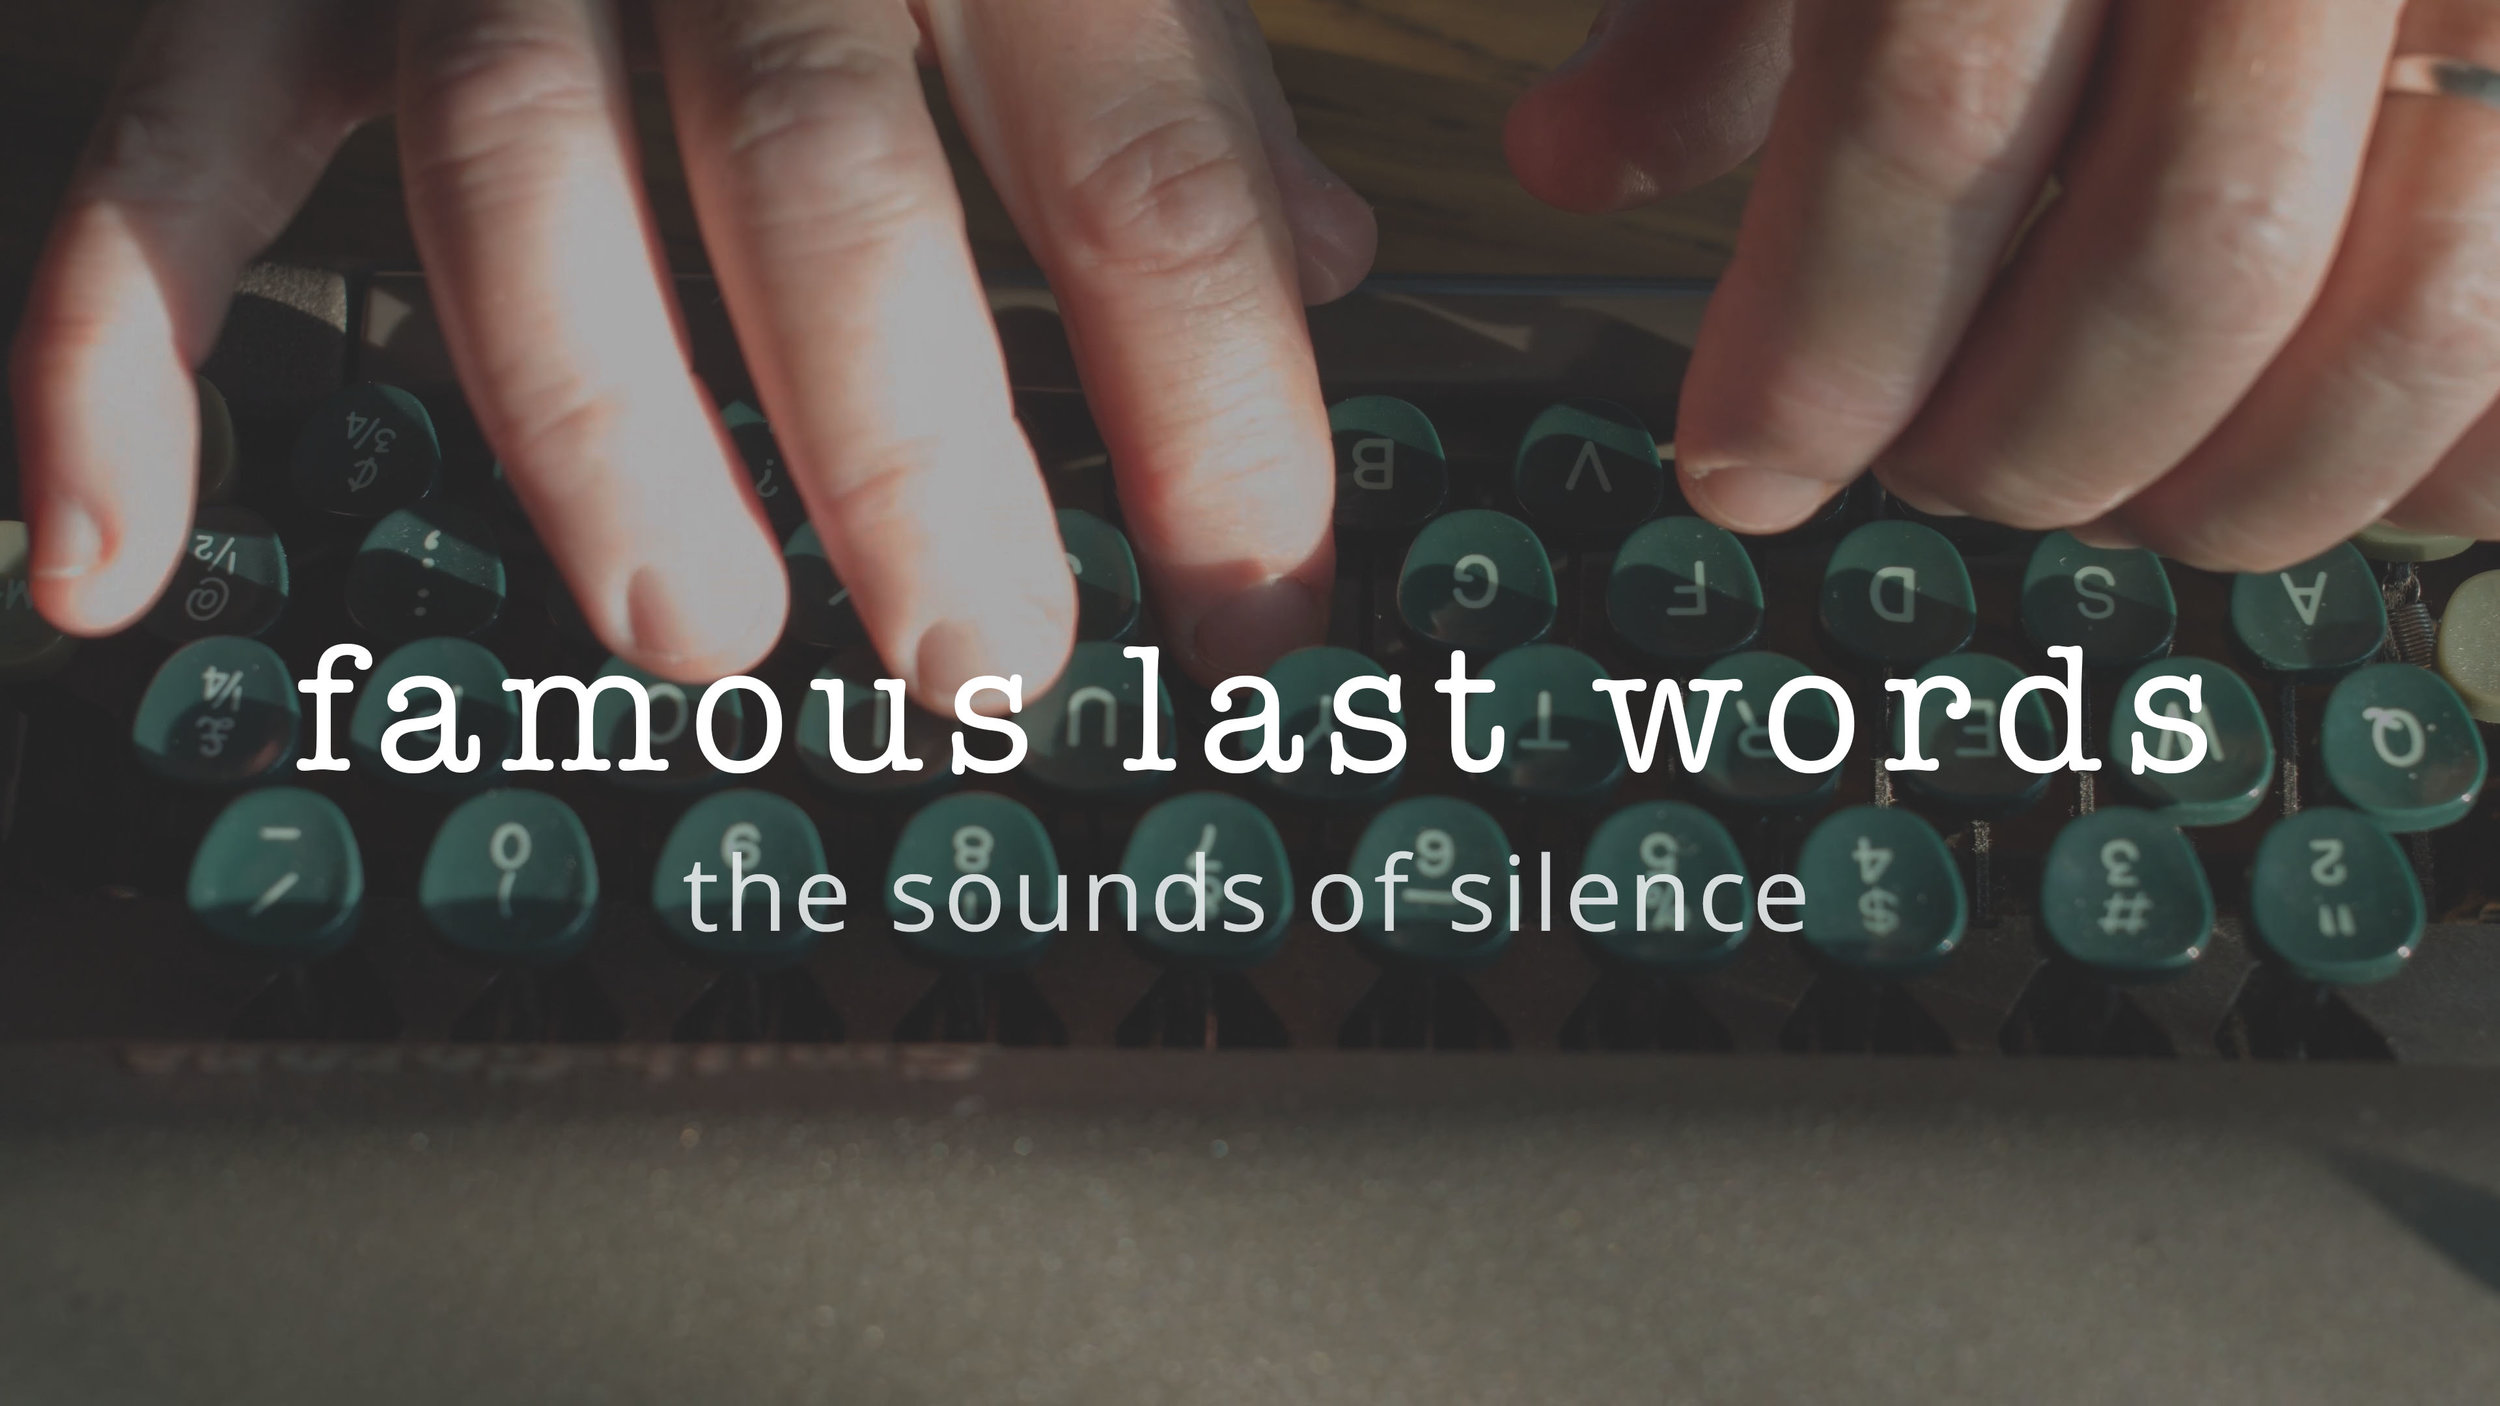 4 | The Sounds of Silence